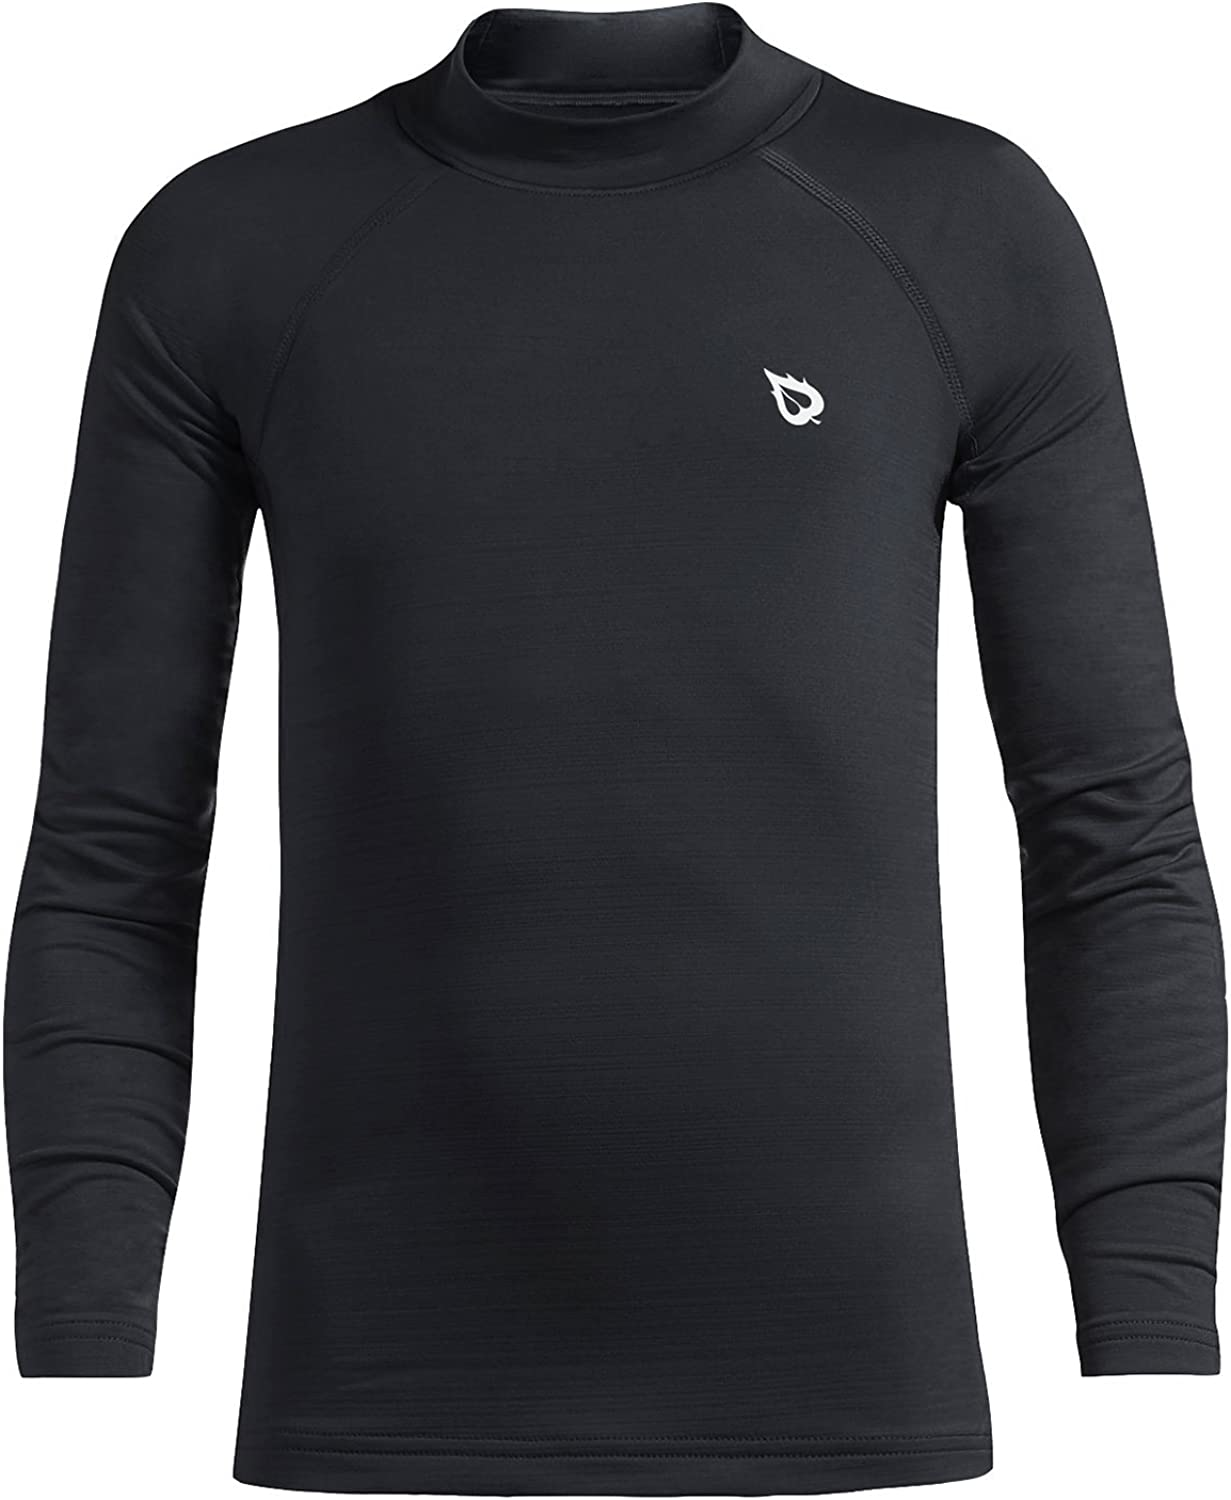 BALEAF Youth Boys' Compression Thermal Shirt Fleece Baselayer Long Sleeve Mock Top: Clothing